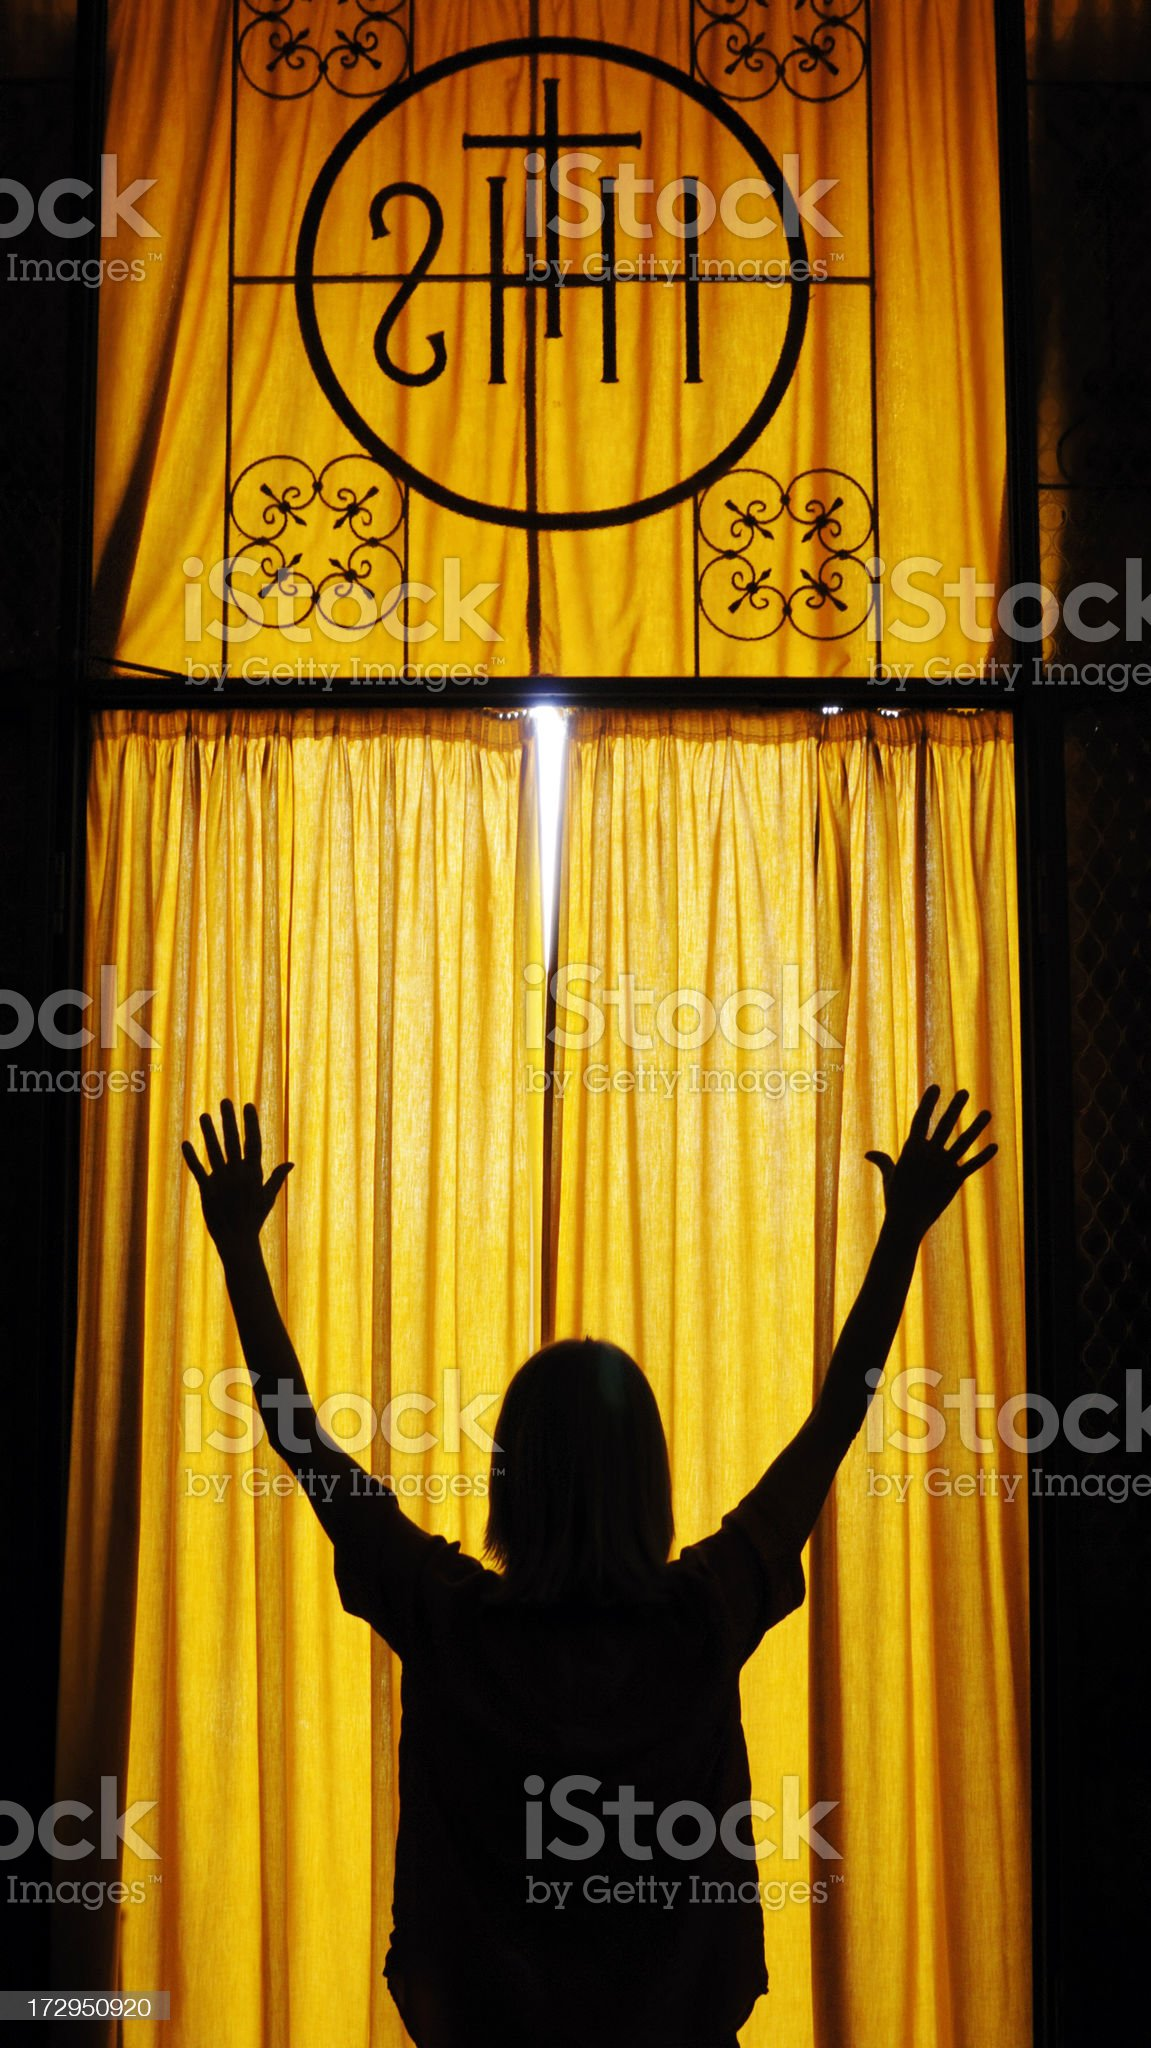 Praying in the chapel royalty-free stock photo